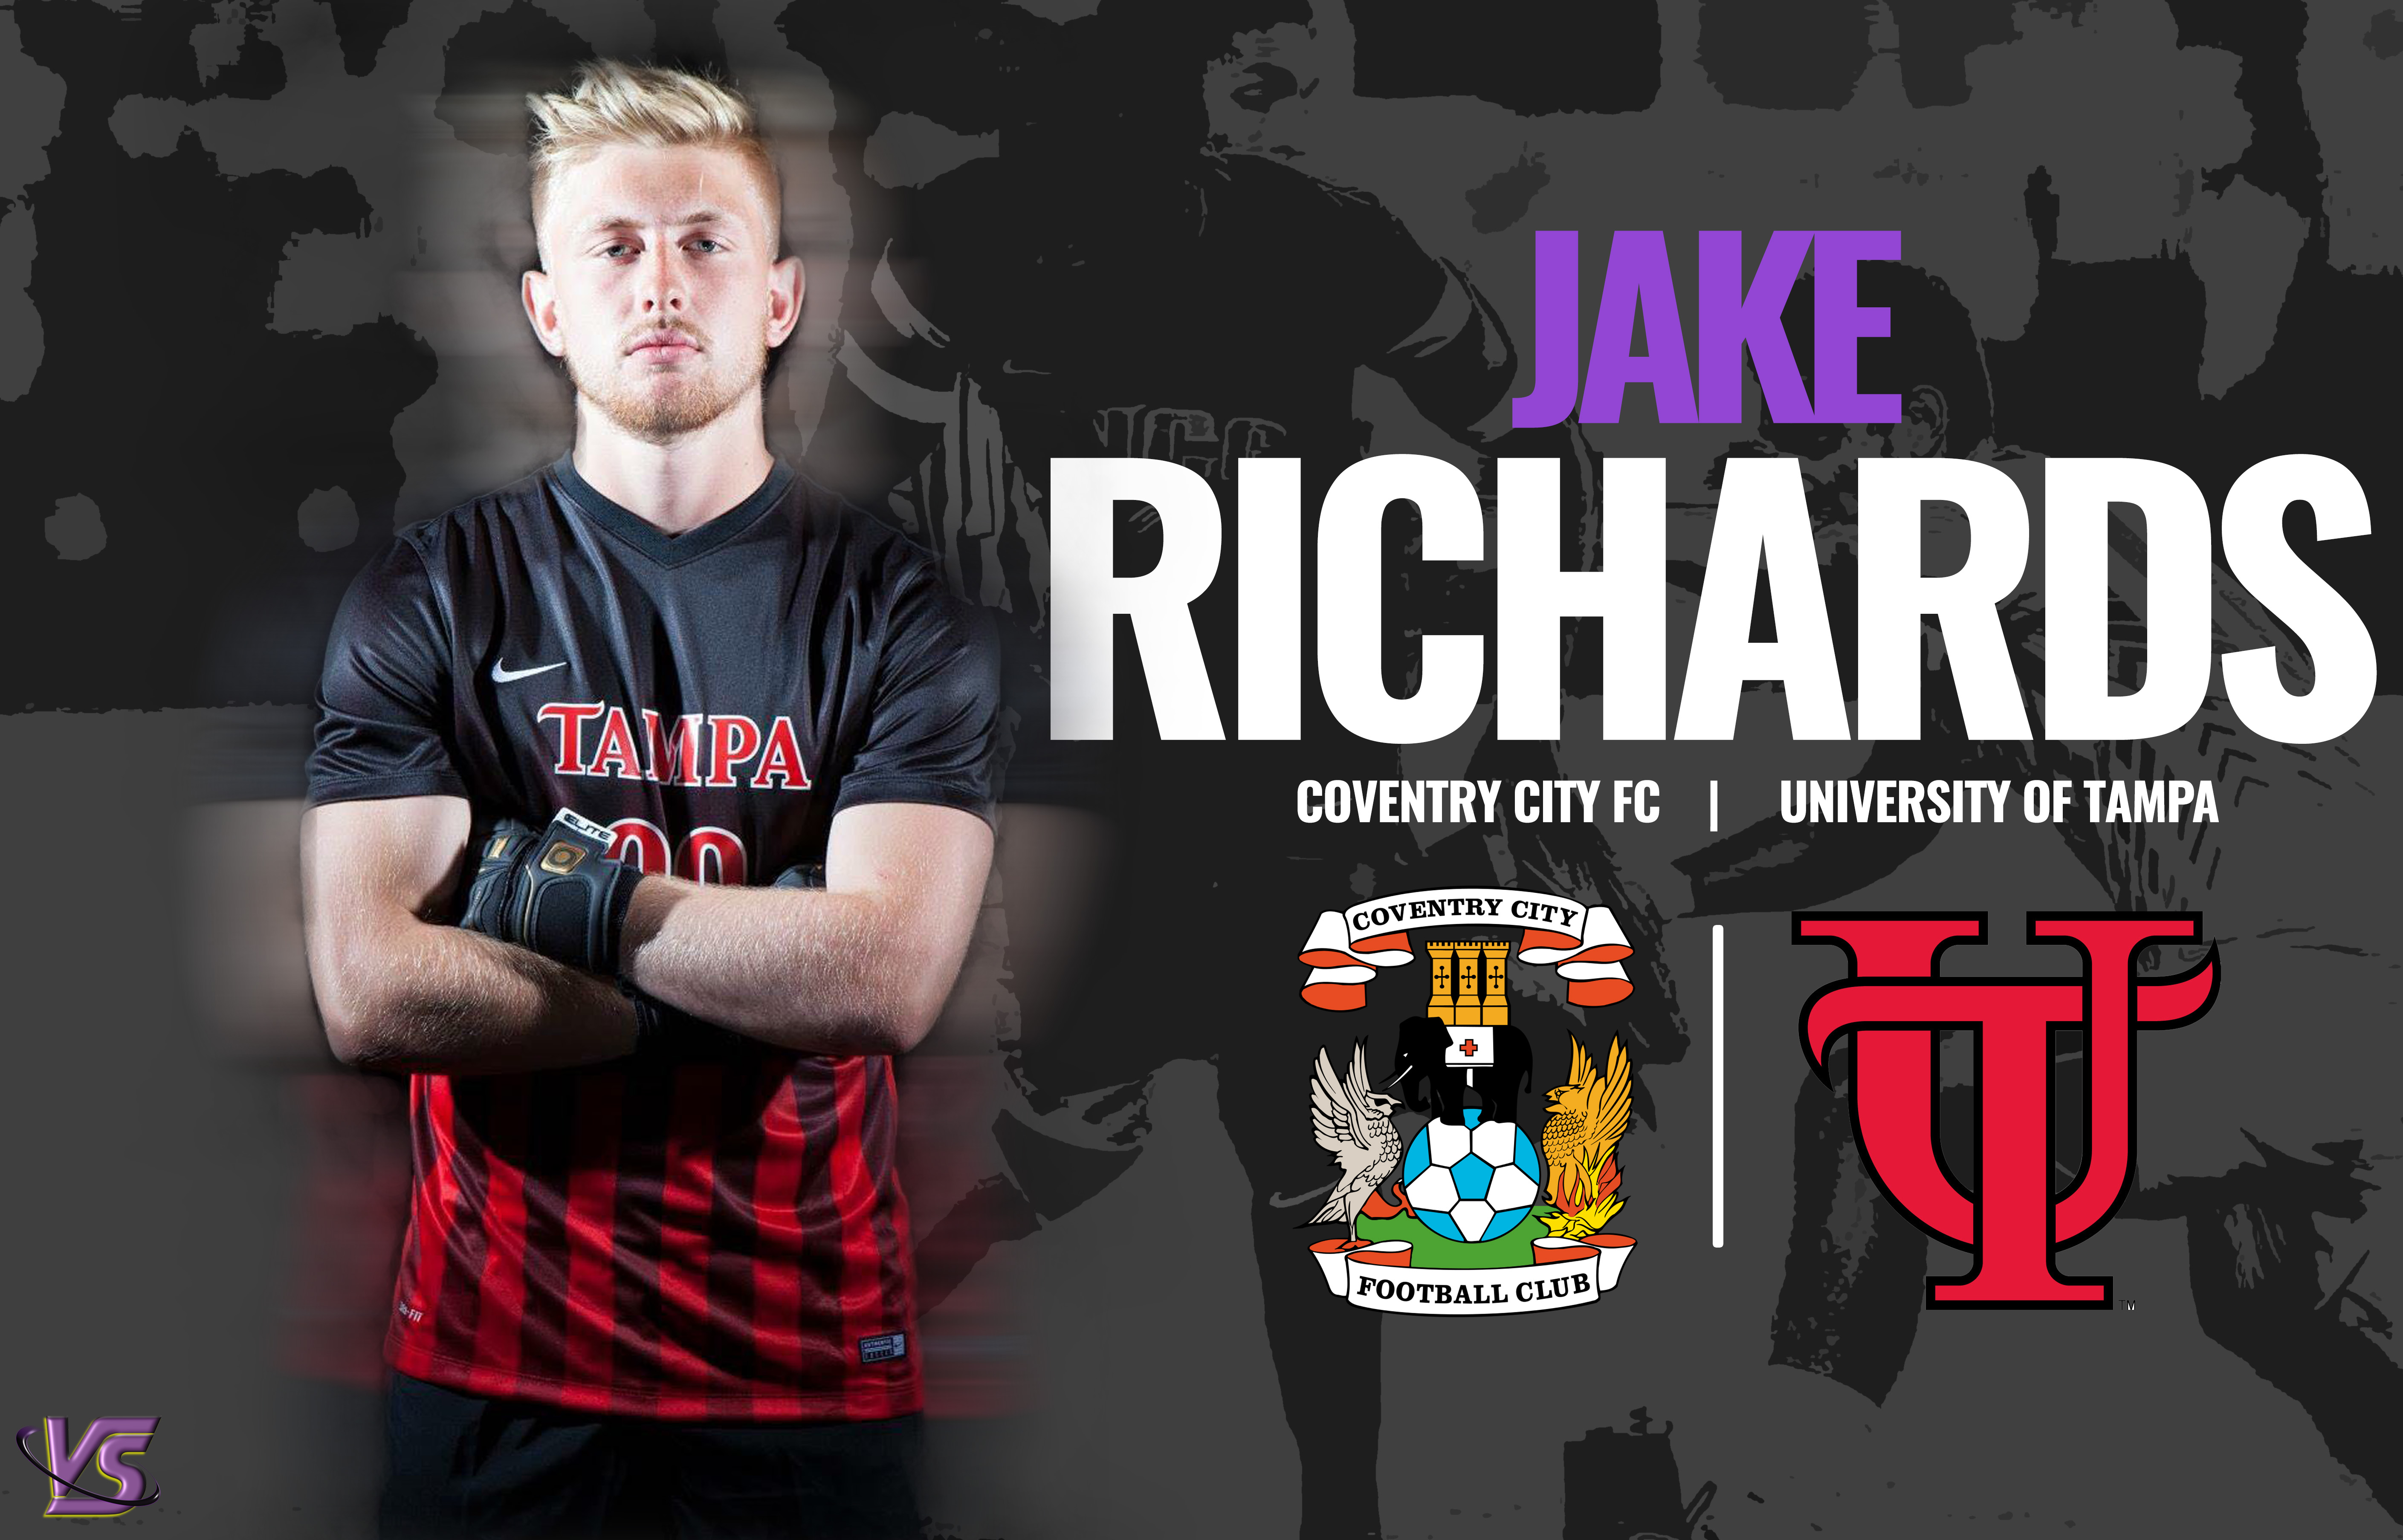 Jake Richards 2016